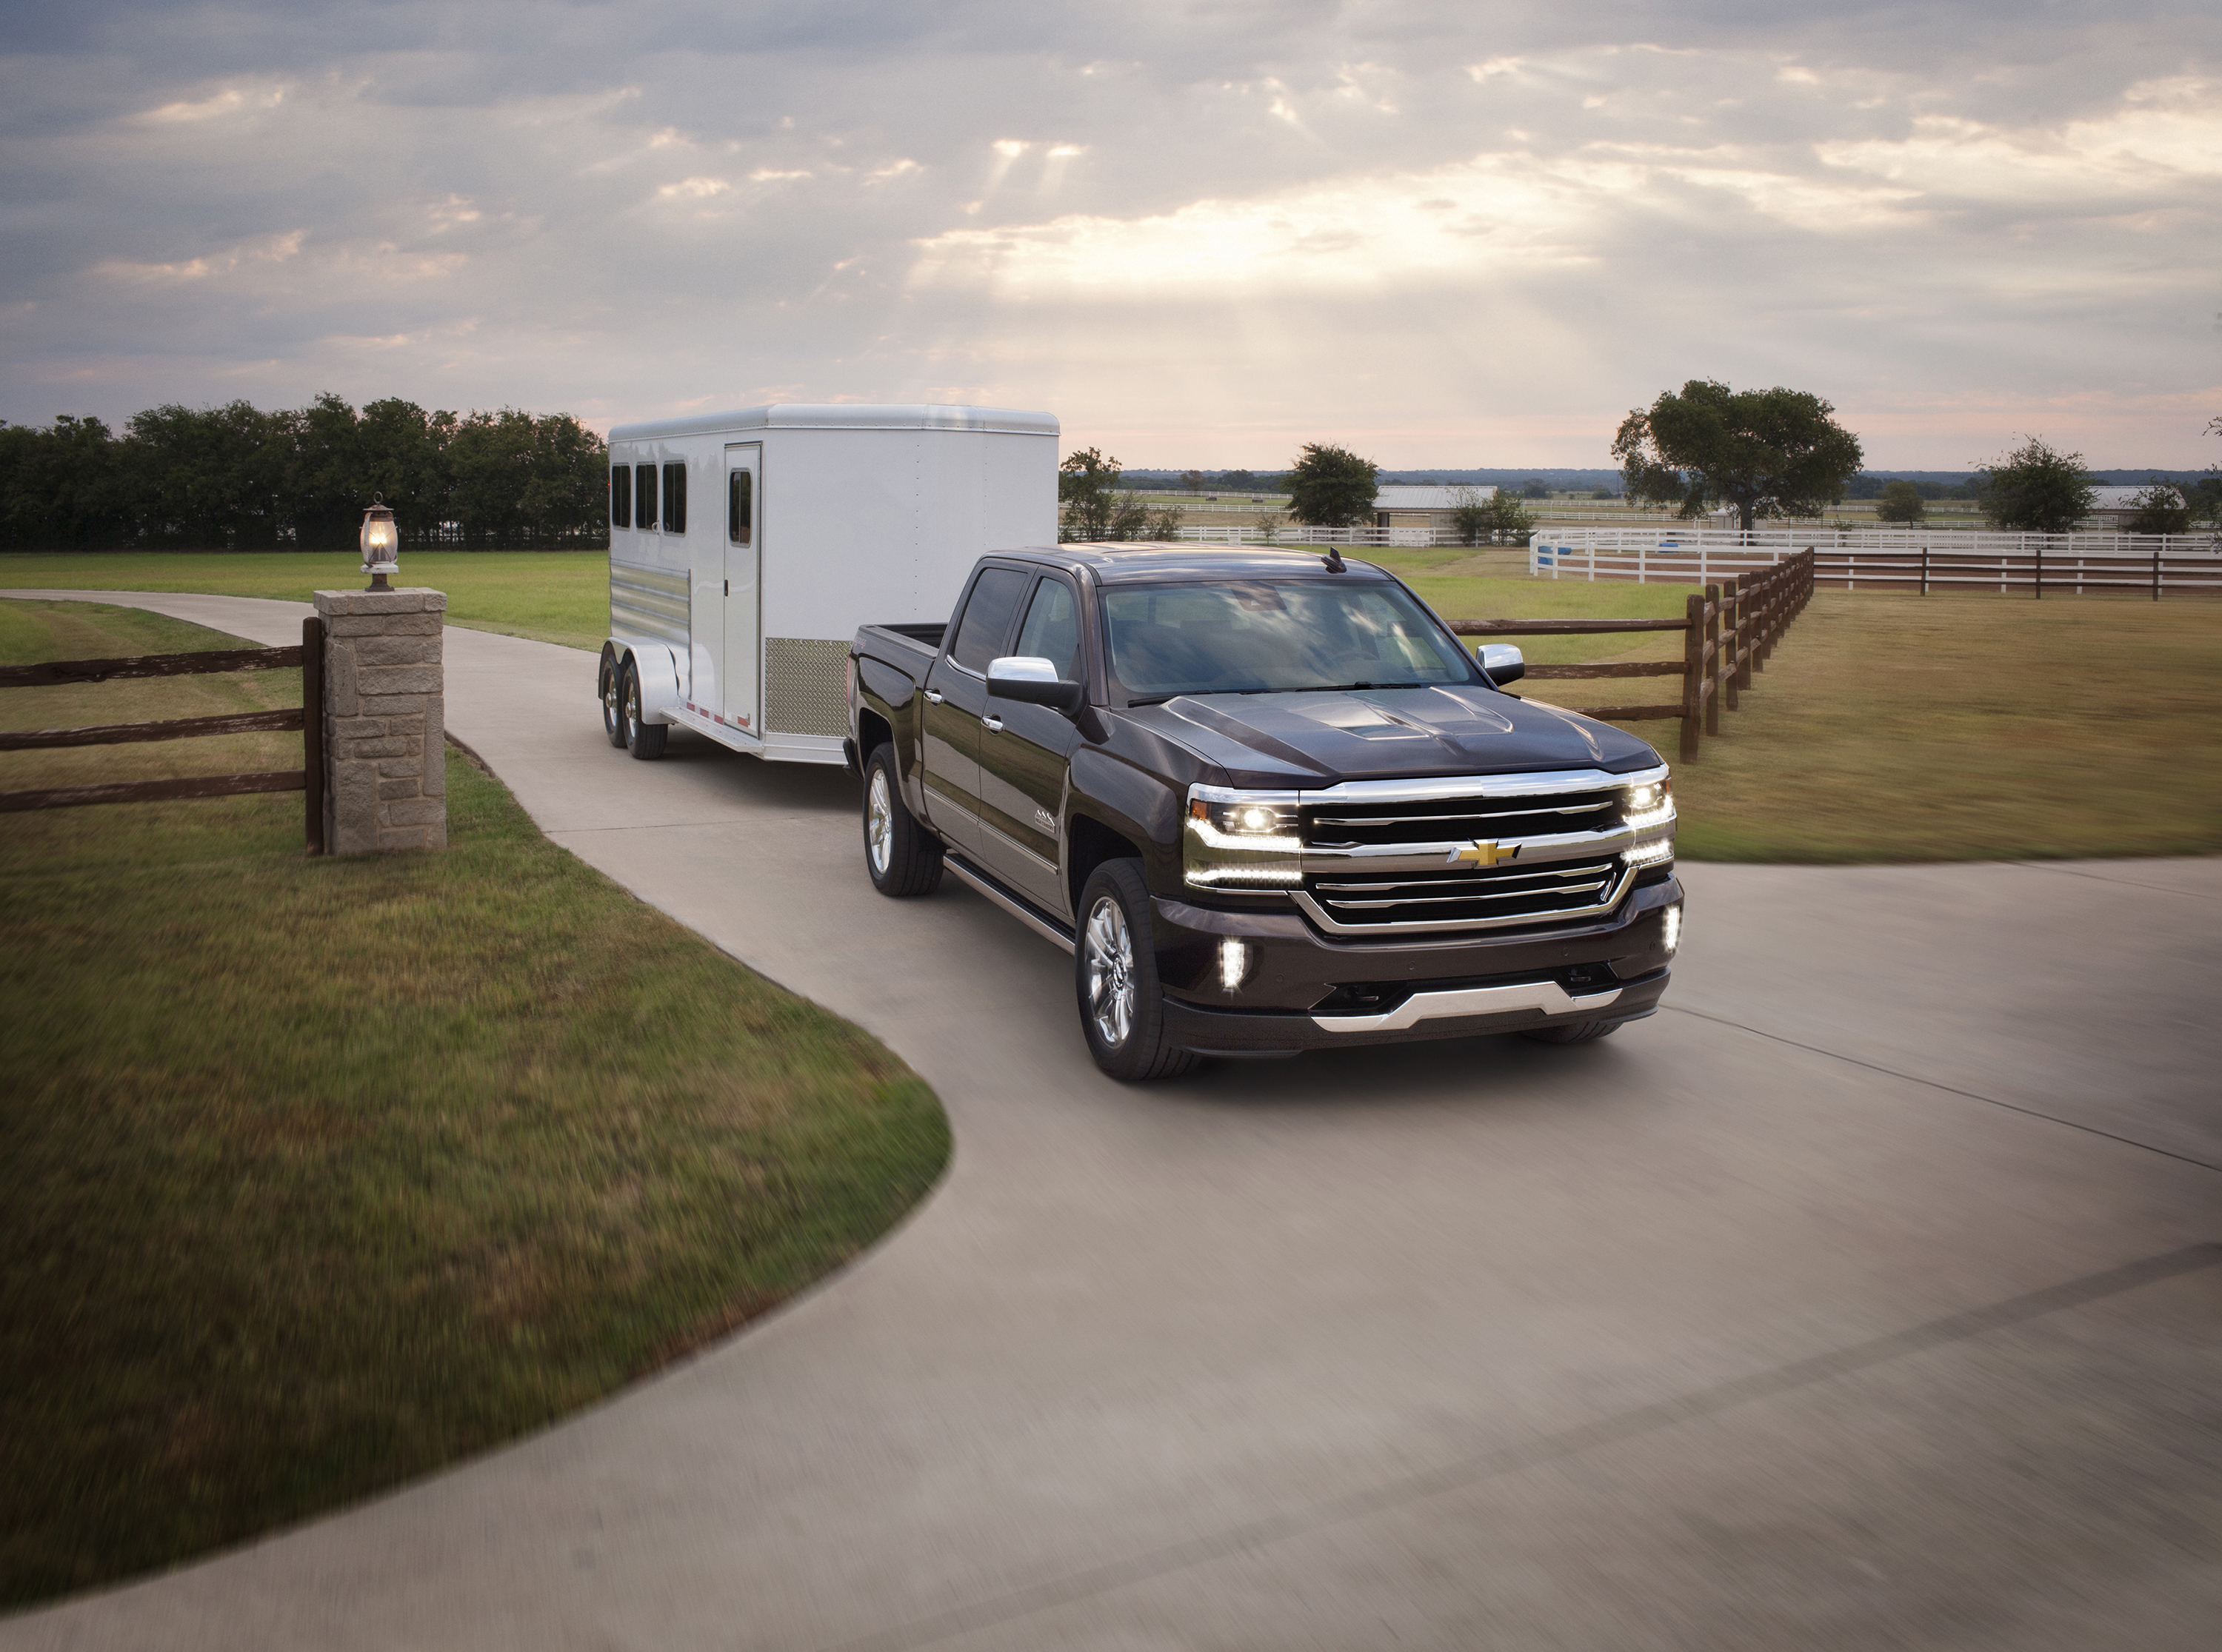 2016 Chevrolet Silverado 1500 High Country with trailer